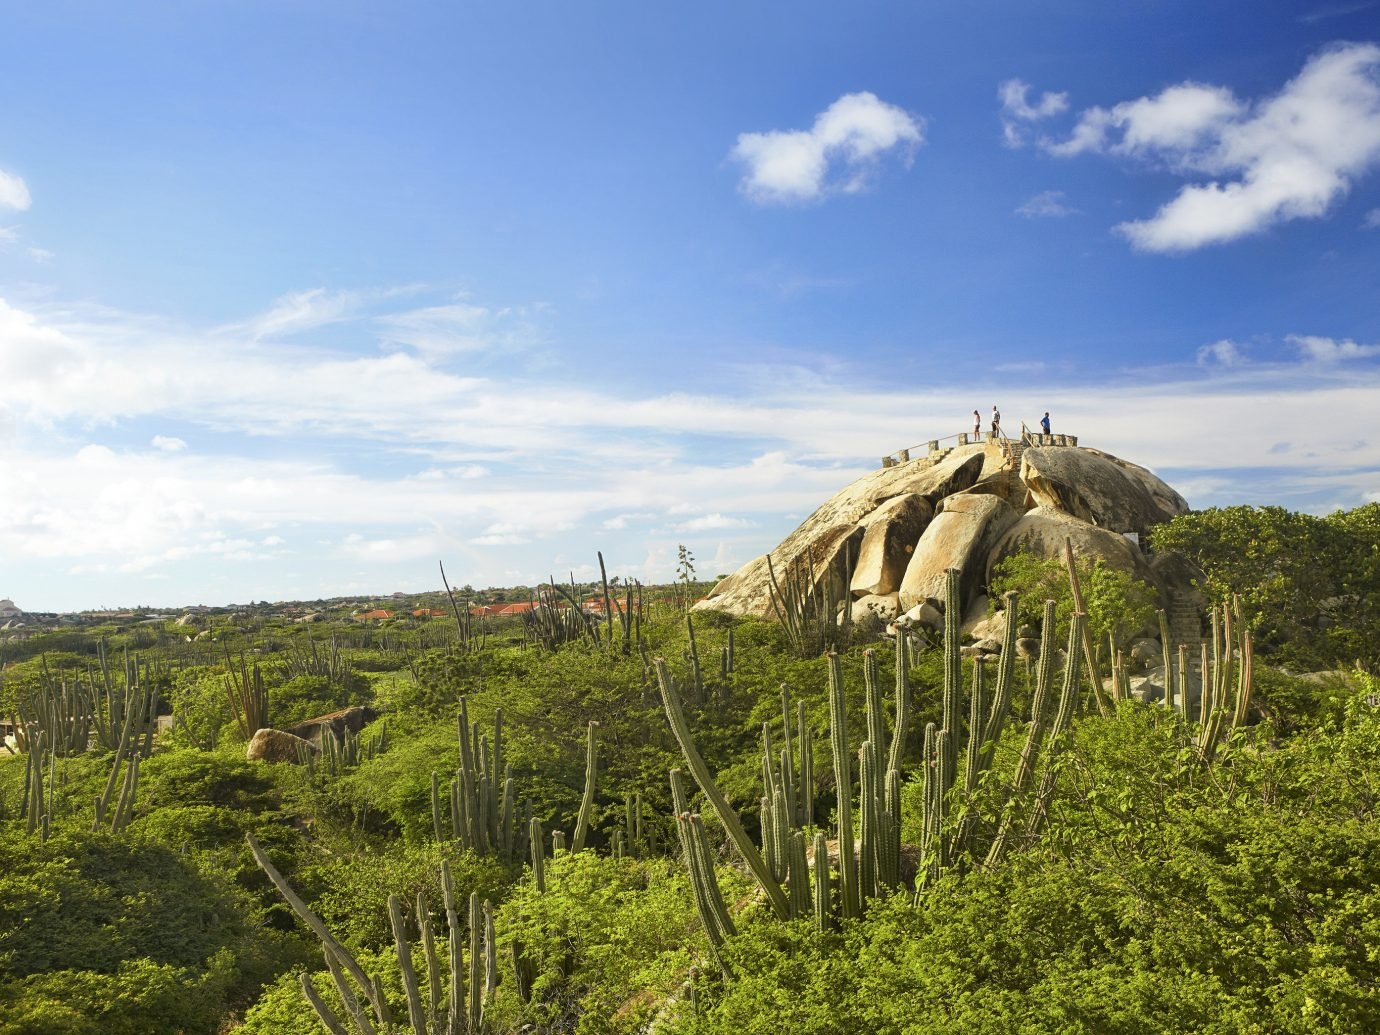 Trip Ideas sky outdoor grass tree Nature field wilderness plant natural environment ecosystem hill vacation savanna mountain arecales rural area landscape pasture green Jungle national park lush day hillside